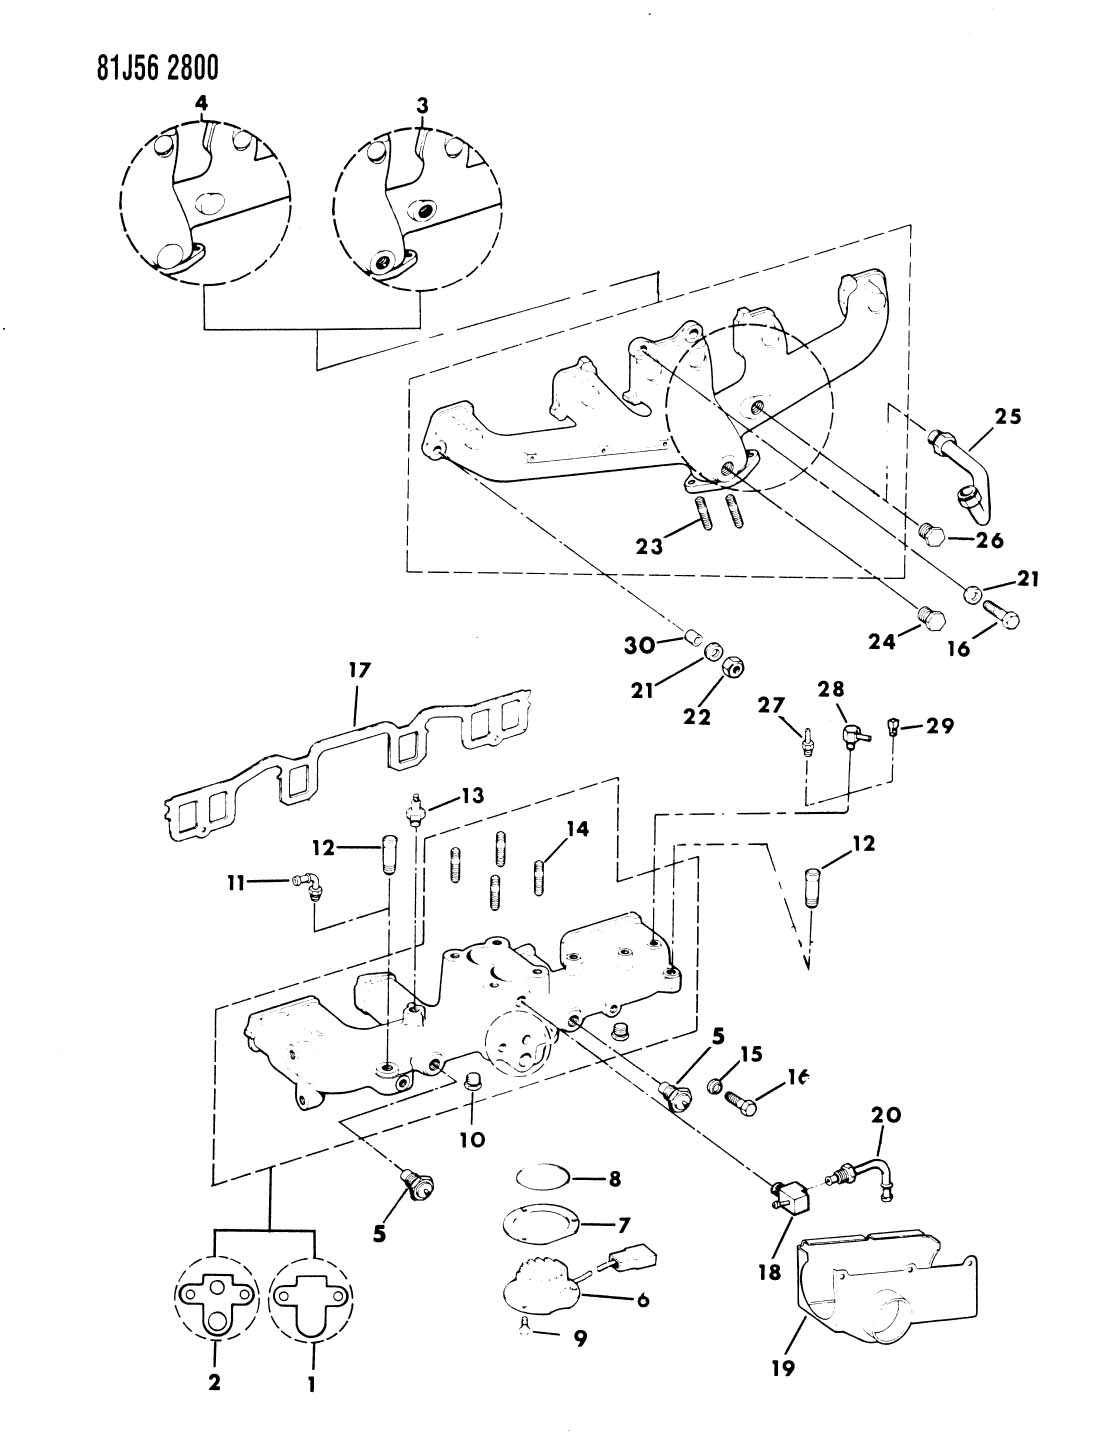 j3242601 auto electrical wiring diagram 1979 Jeep CJ Wiring-Diagram j3242601